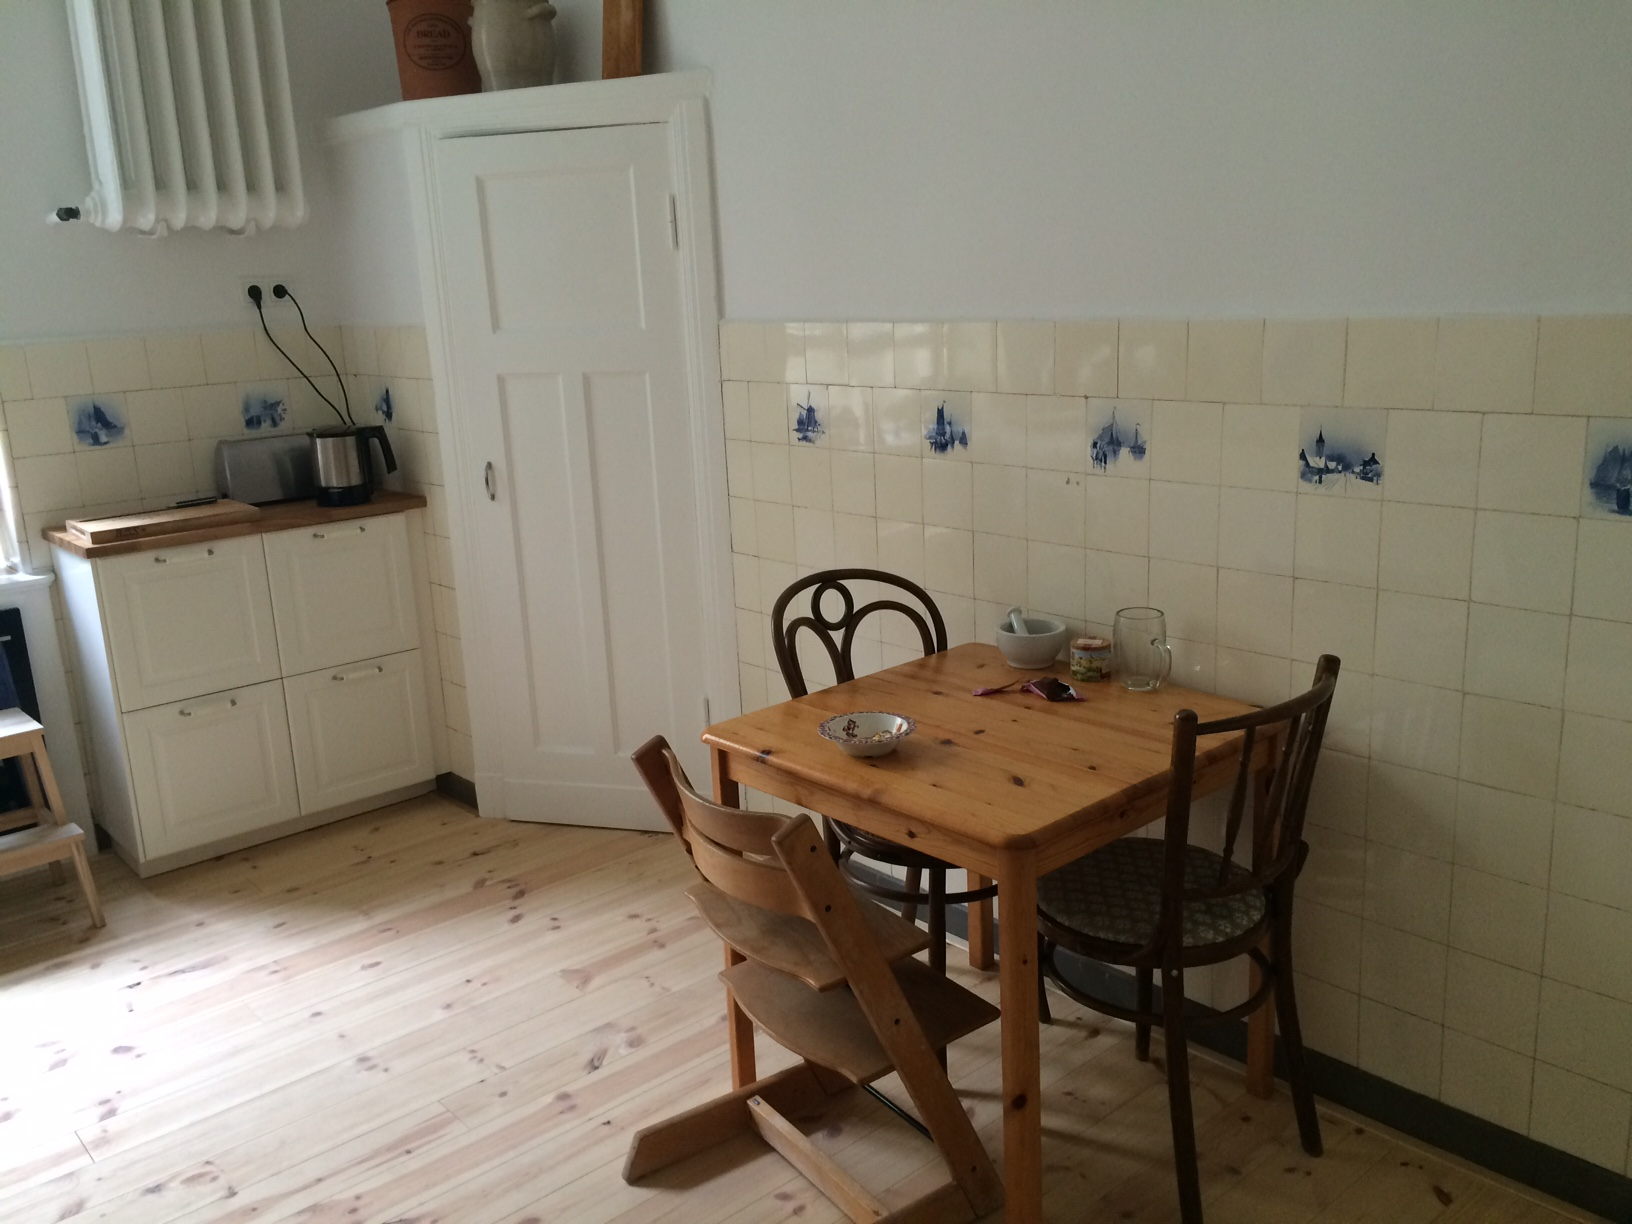 Our New Kitchen - The Wednesday Chef